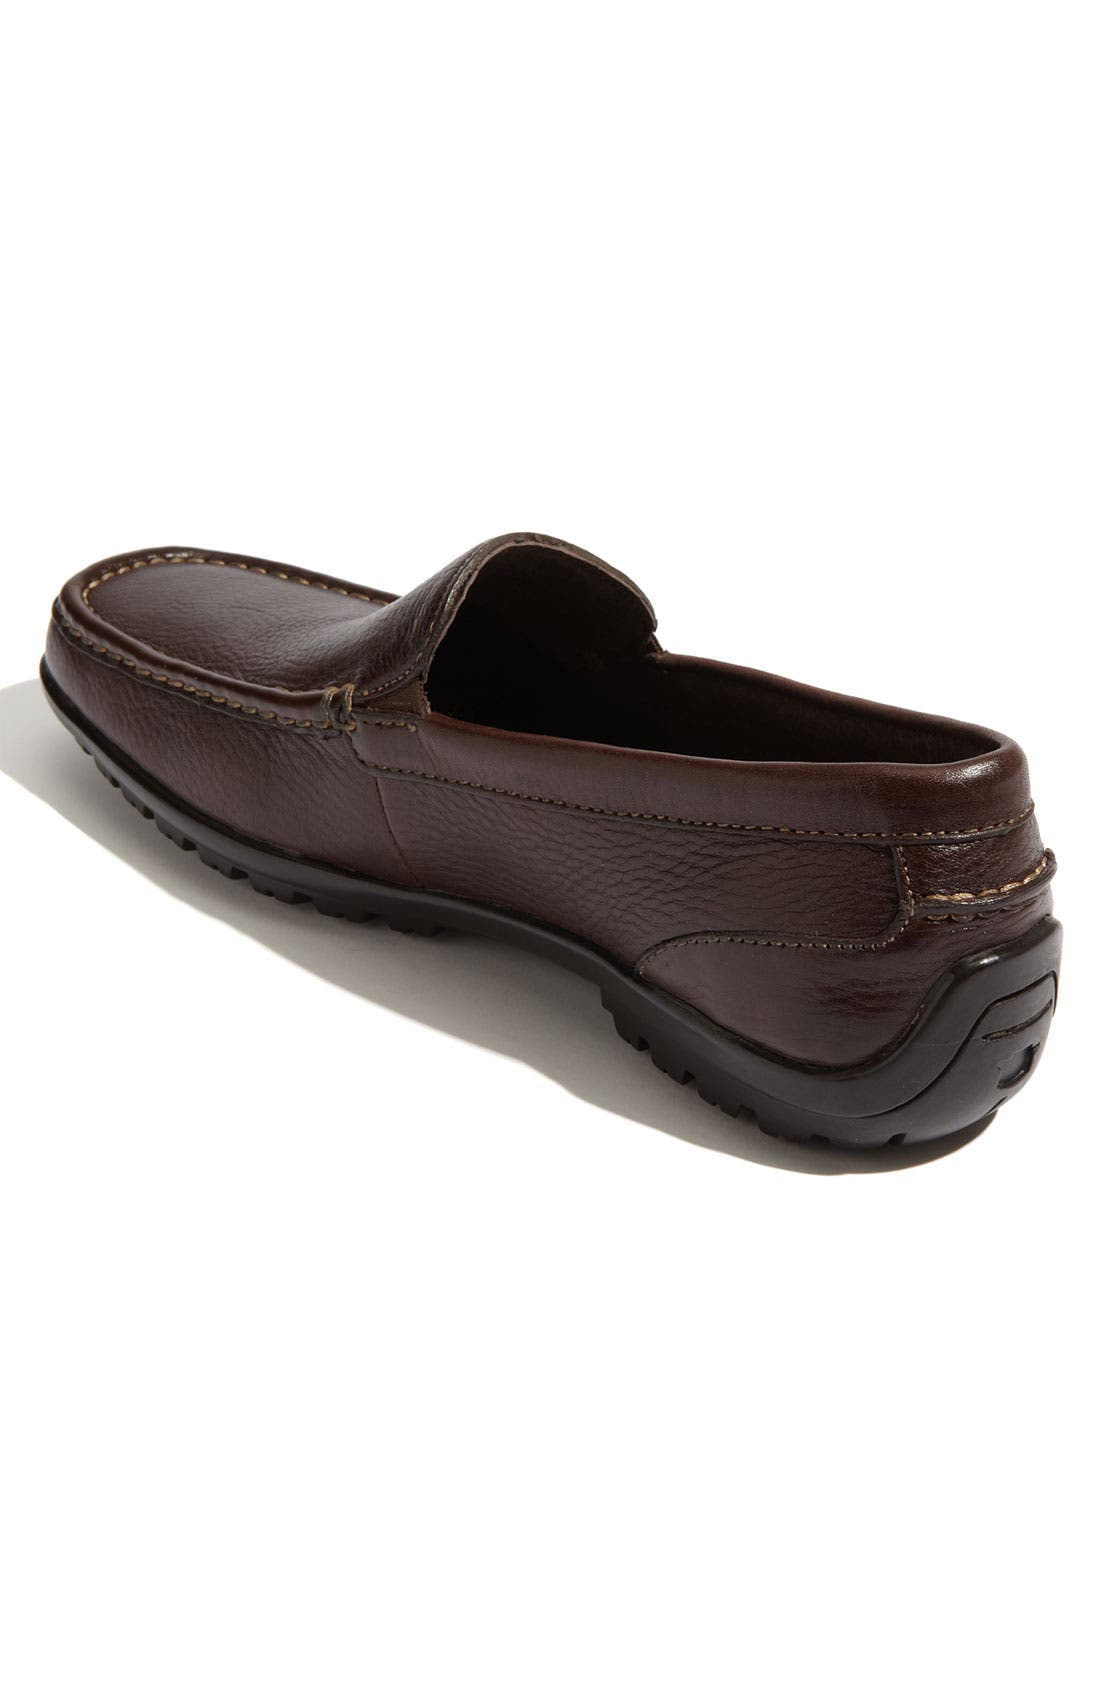 Alternate Image 3  - Florsheim 'Nowles' Slip-On